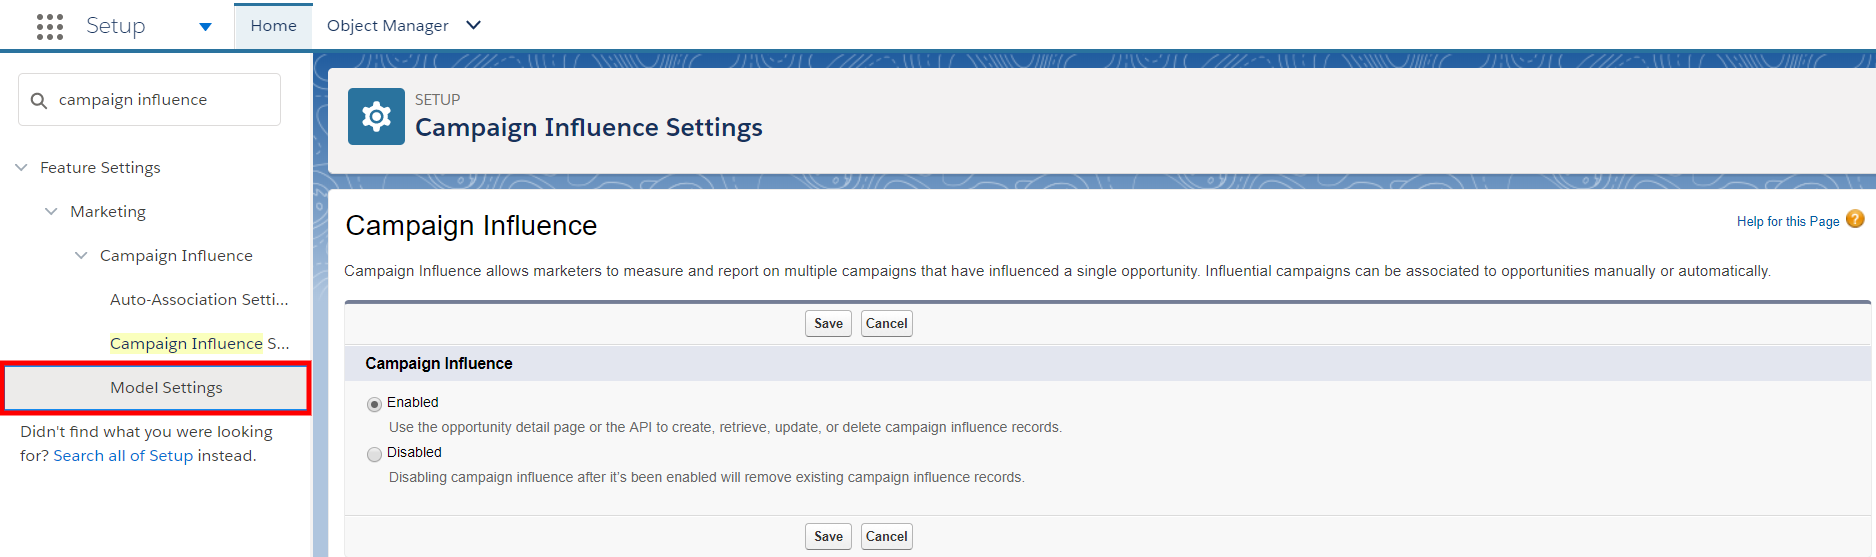 Campaign Influence Setup 3